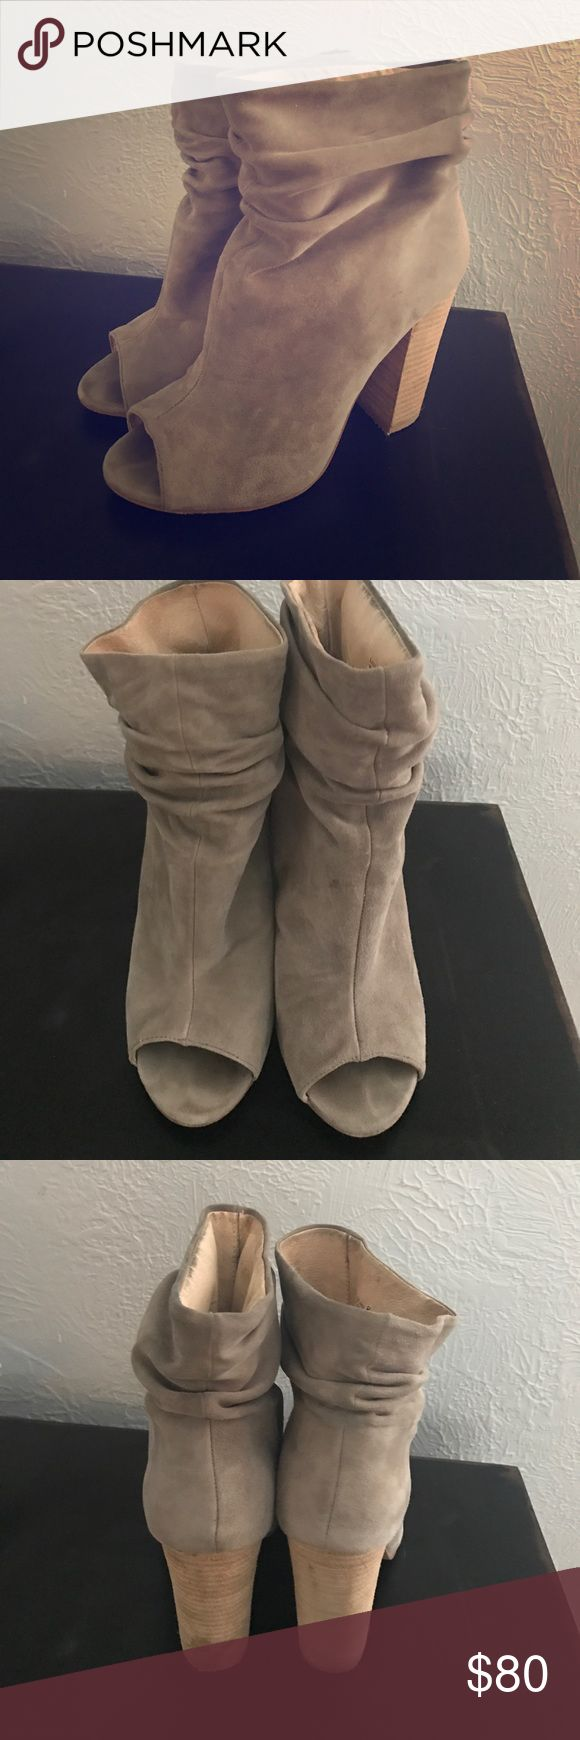 Kristin Cavalari Laurel Slouch Bootie Cute booties in grey suede, can wear with jeans or a dress. Barely worn, only a few times. Chinese Laundry Shoes Ankle Boots & Booties